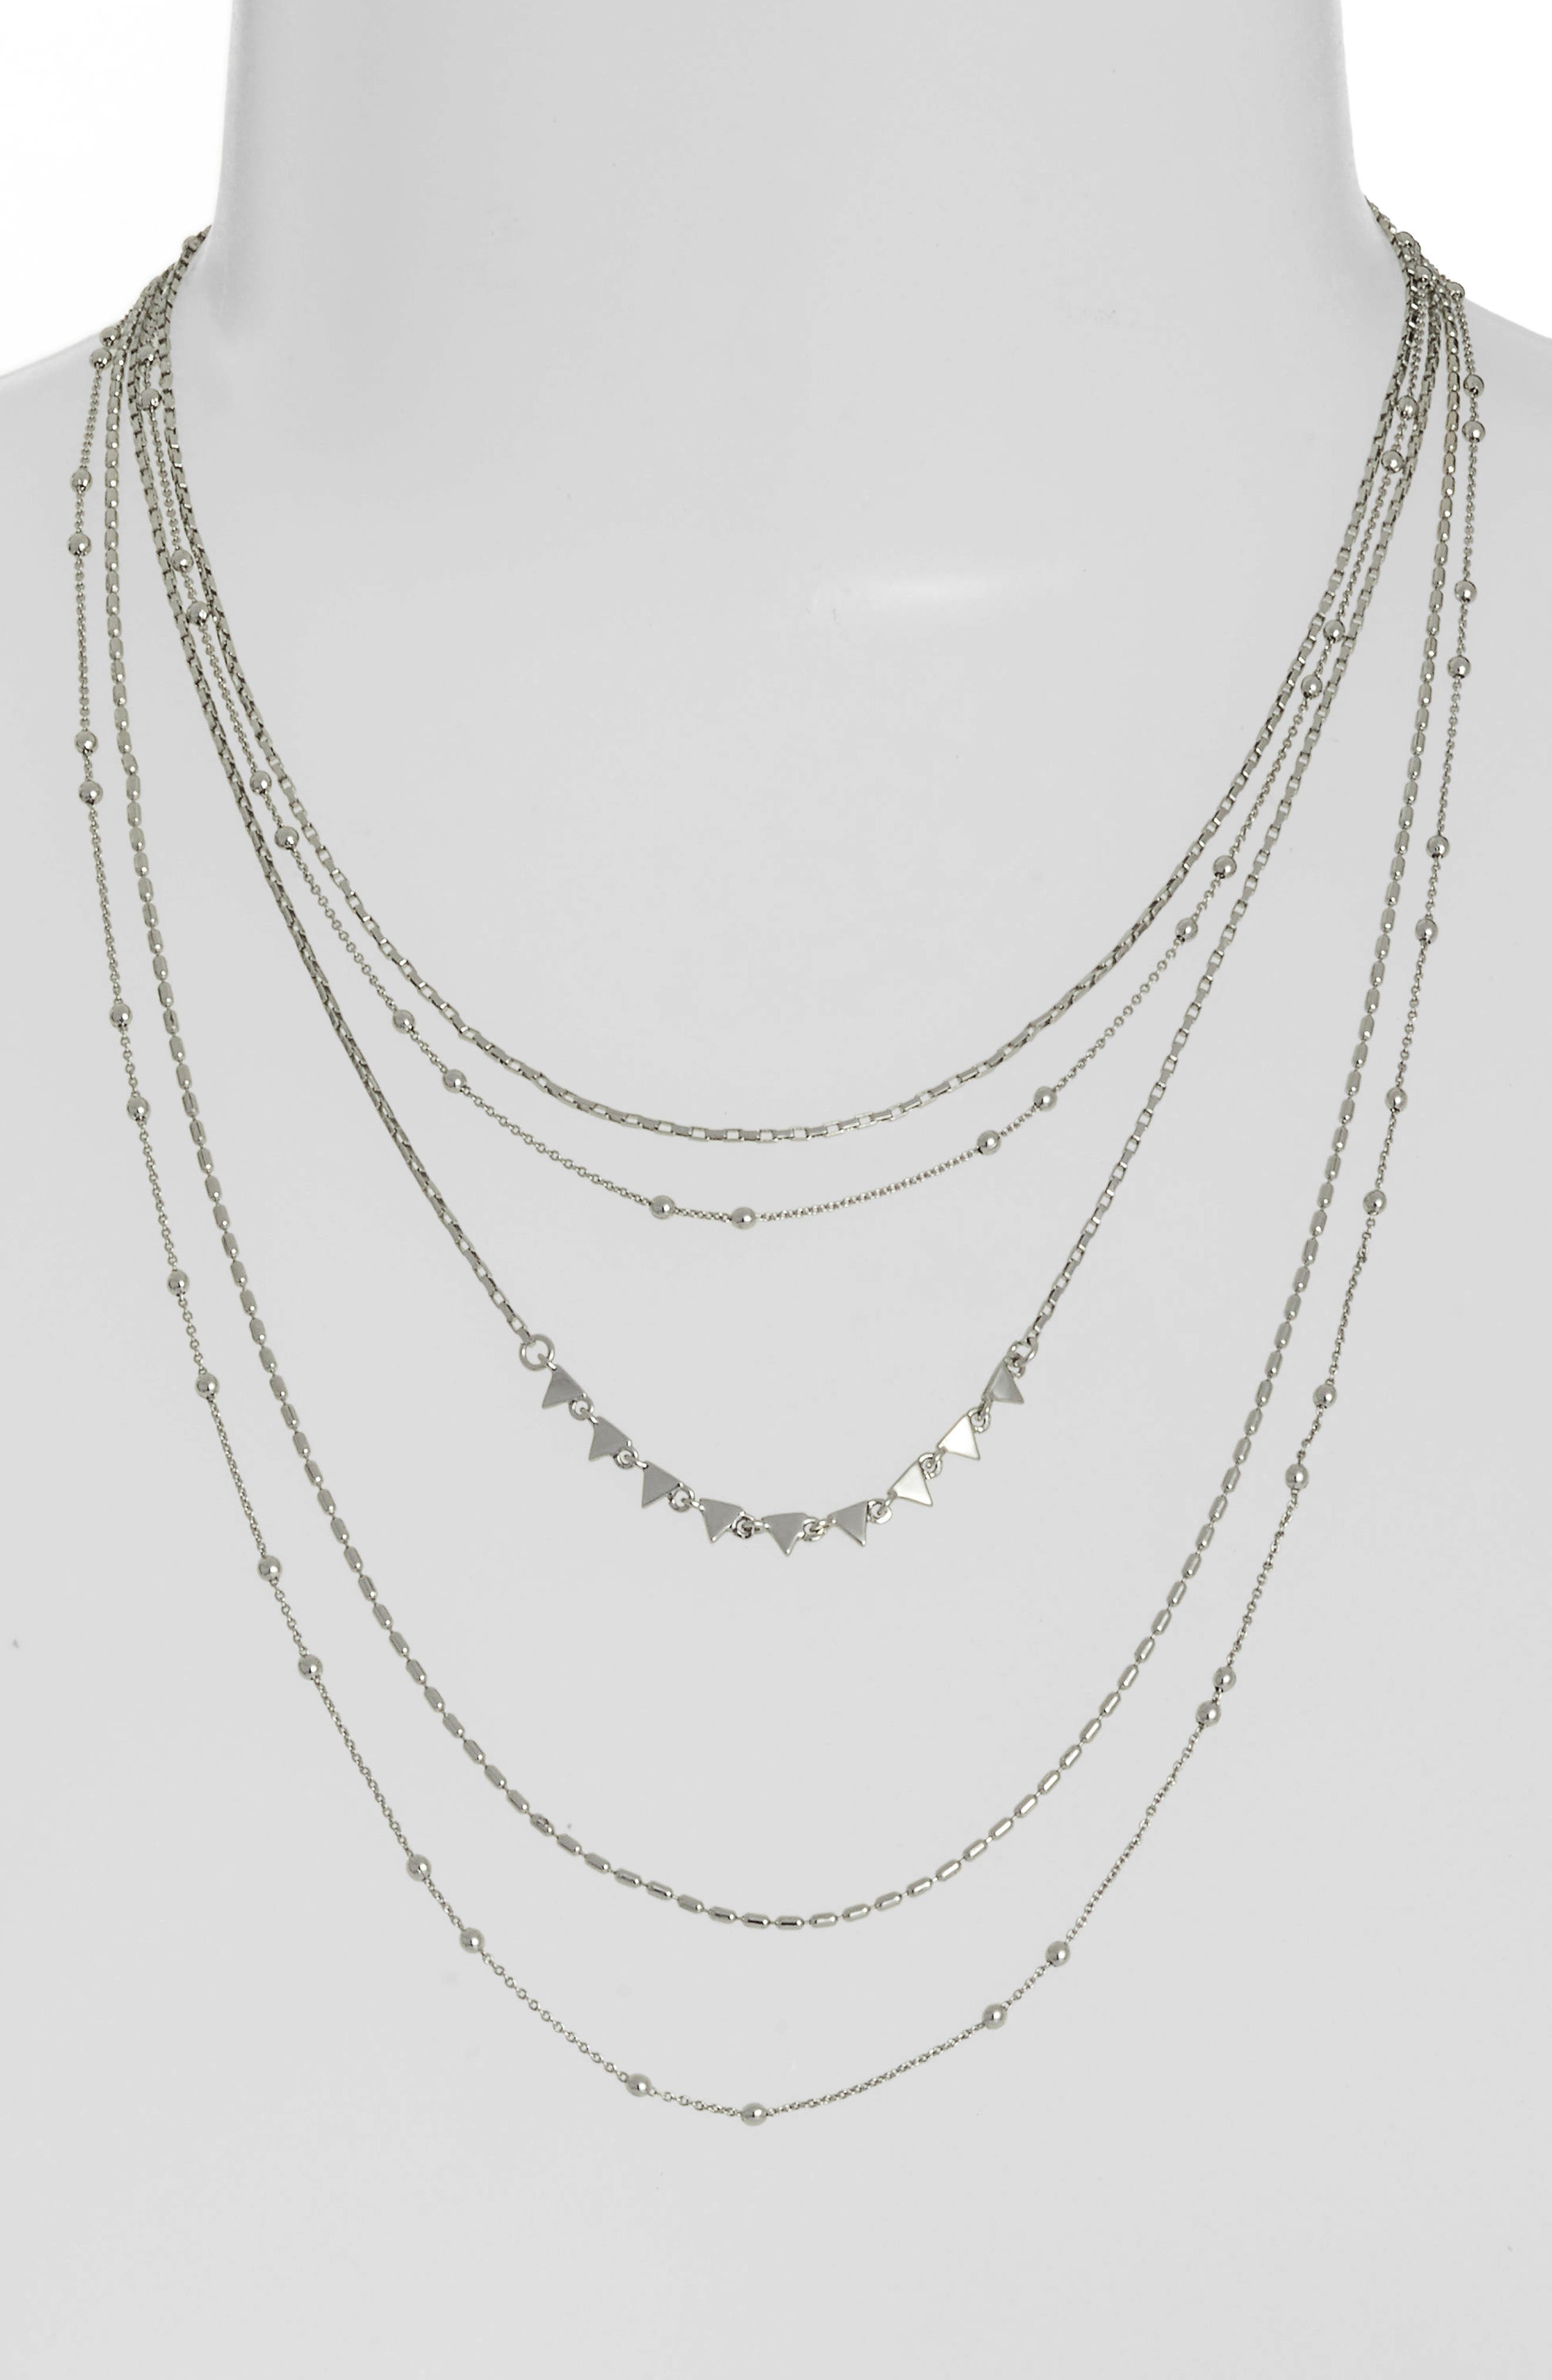 Zoe Multistrand Necklace,                             Main thumbnail 1, color,                             Silver